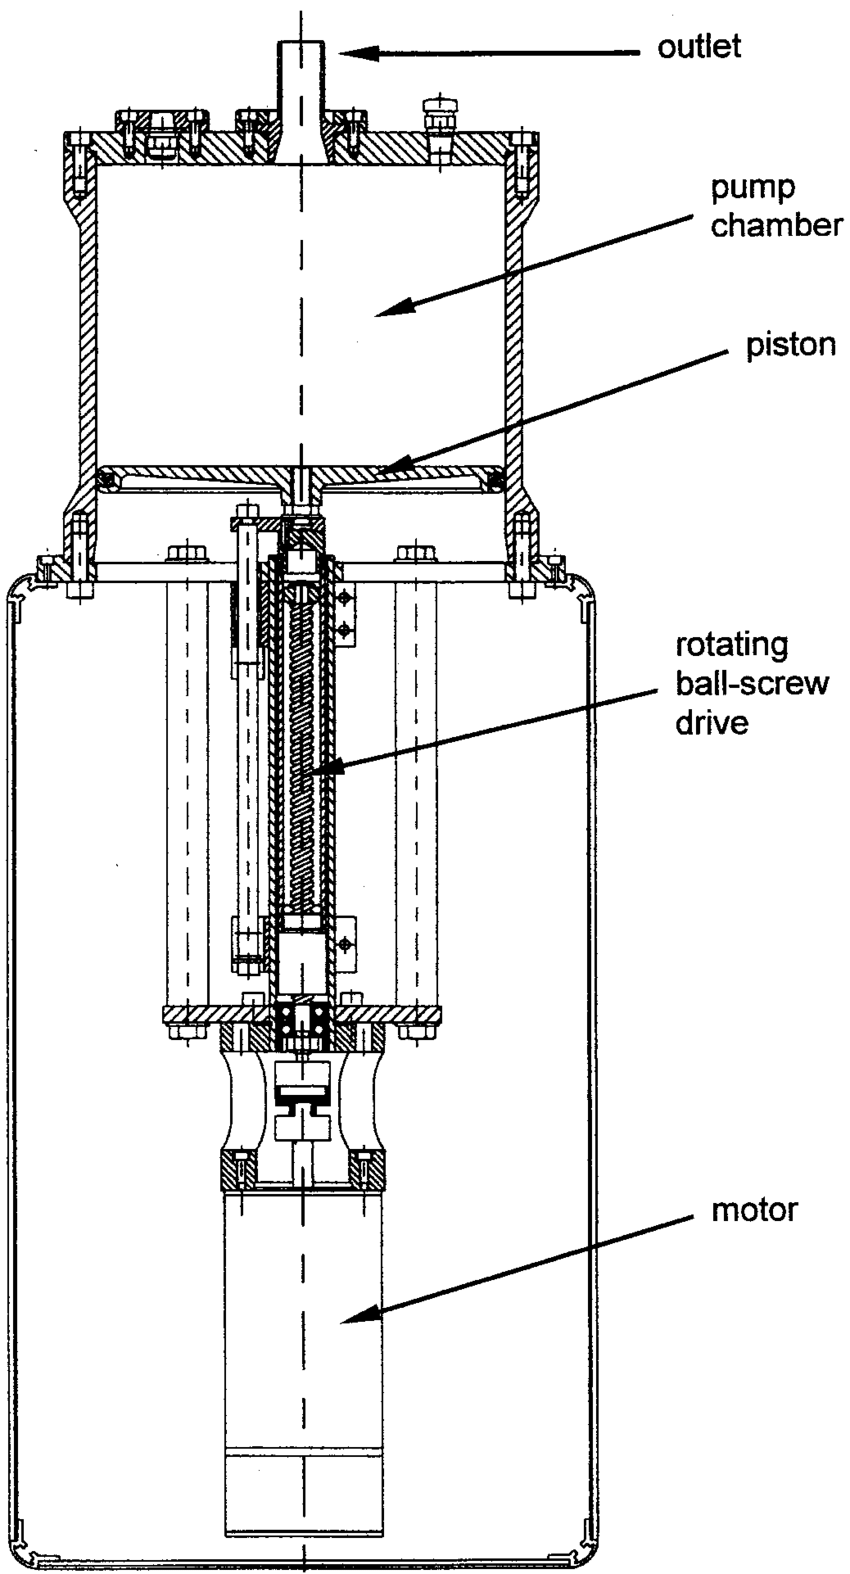 hight resolution of technical drawing of pump chamber piston drive and motor